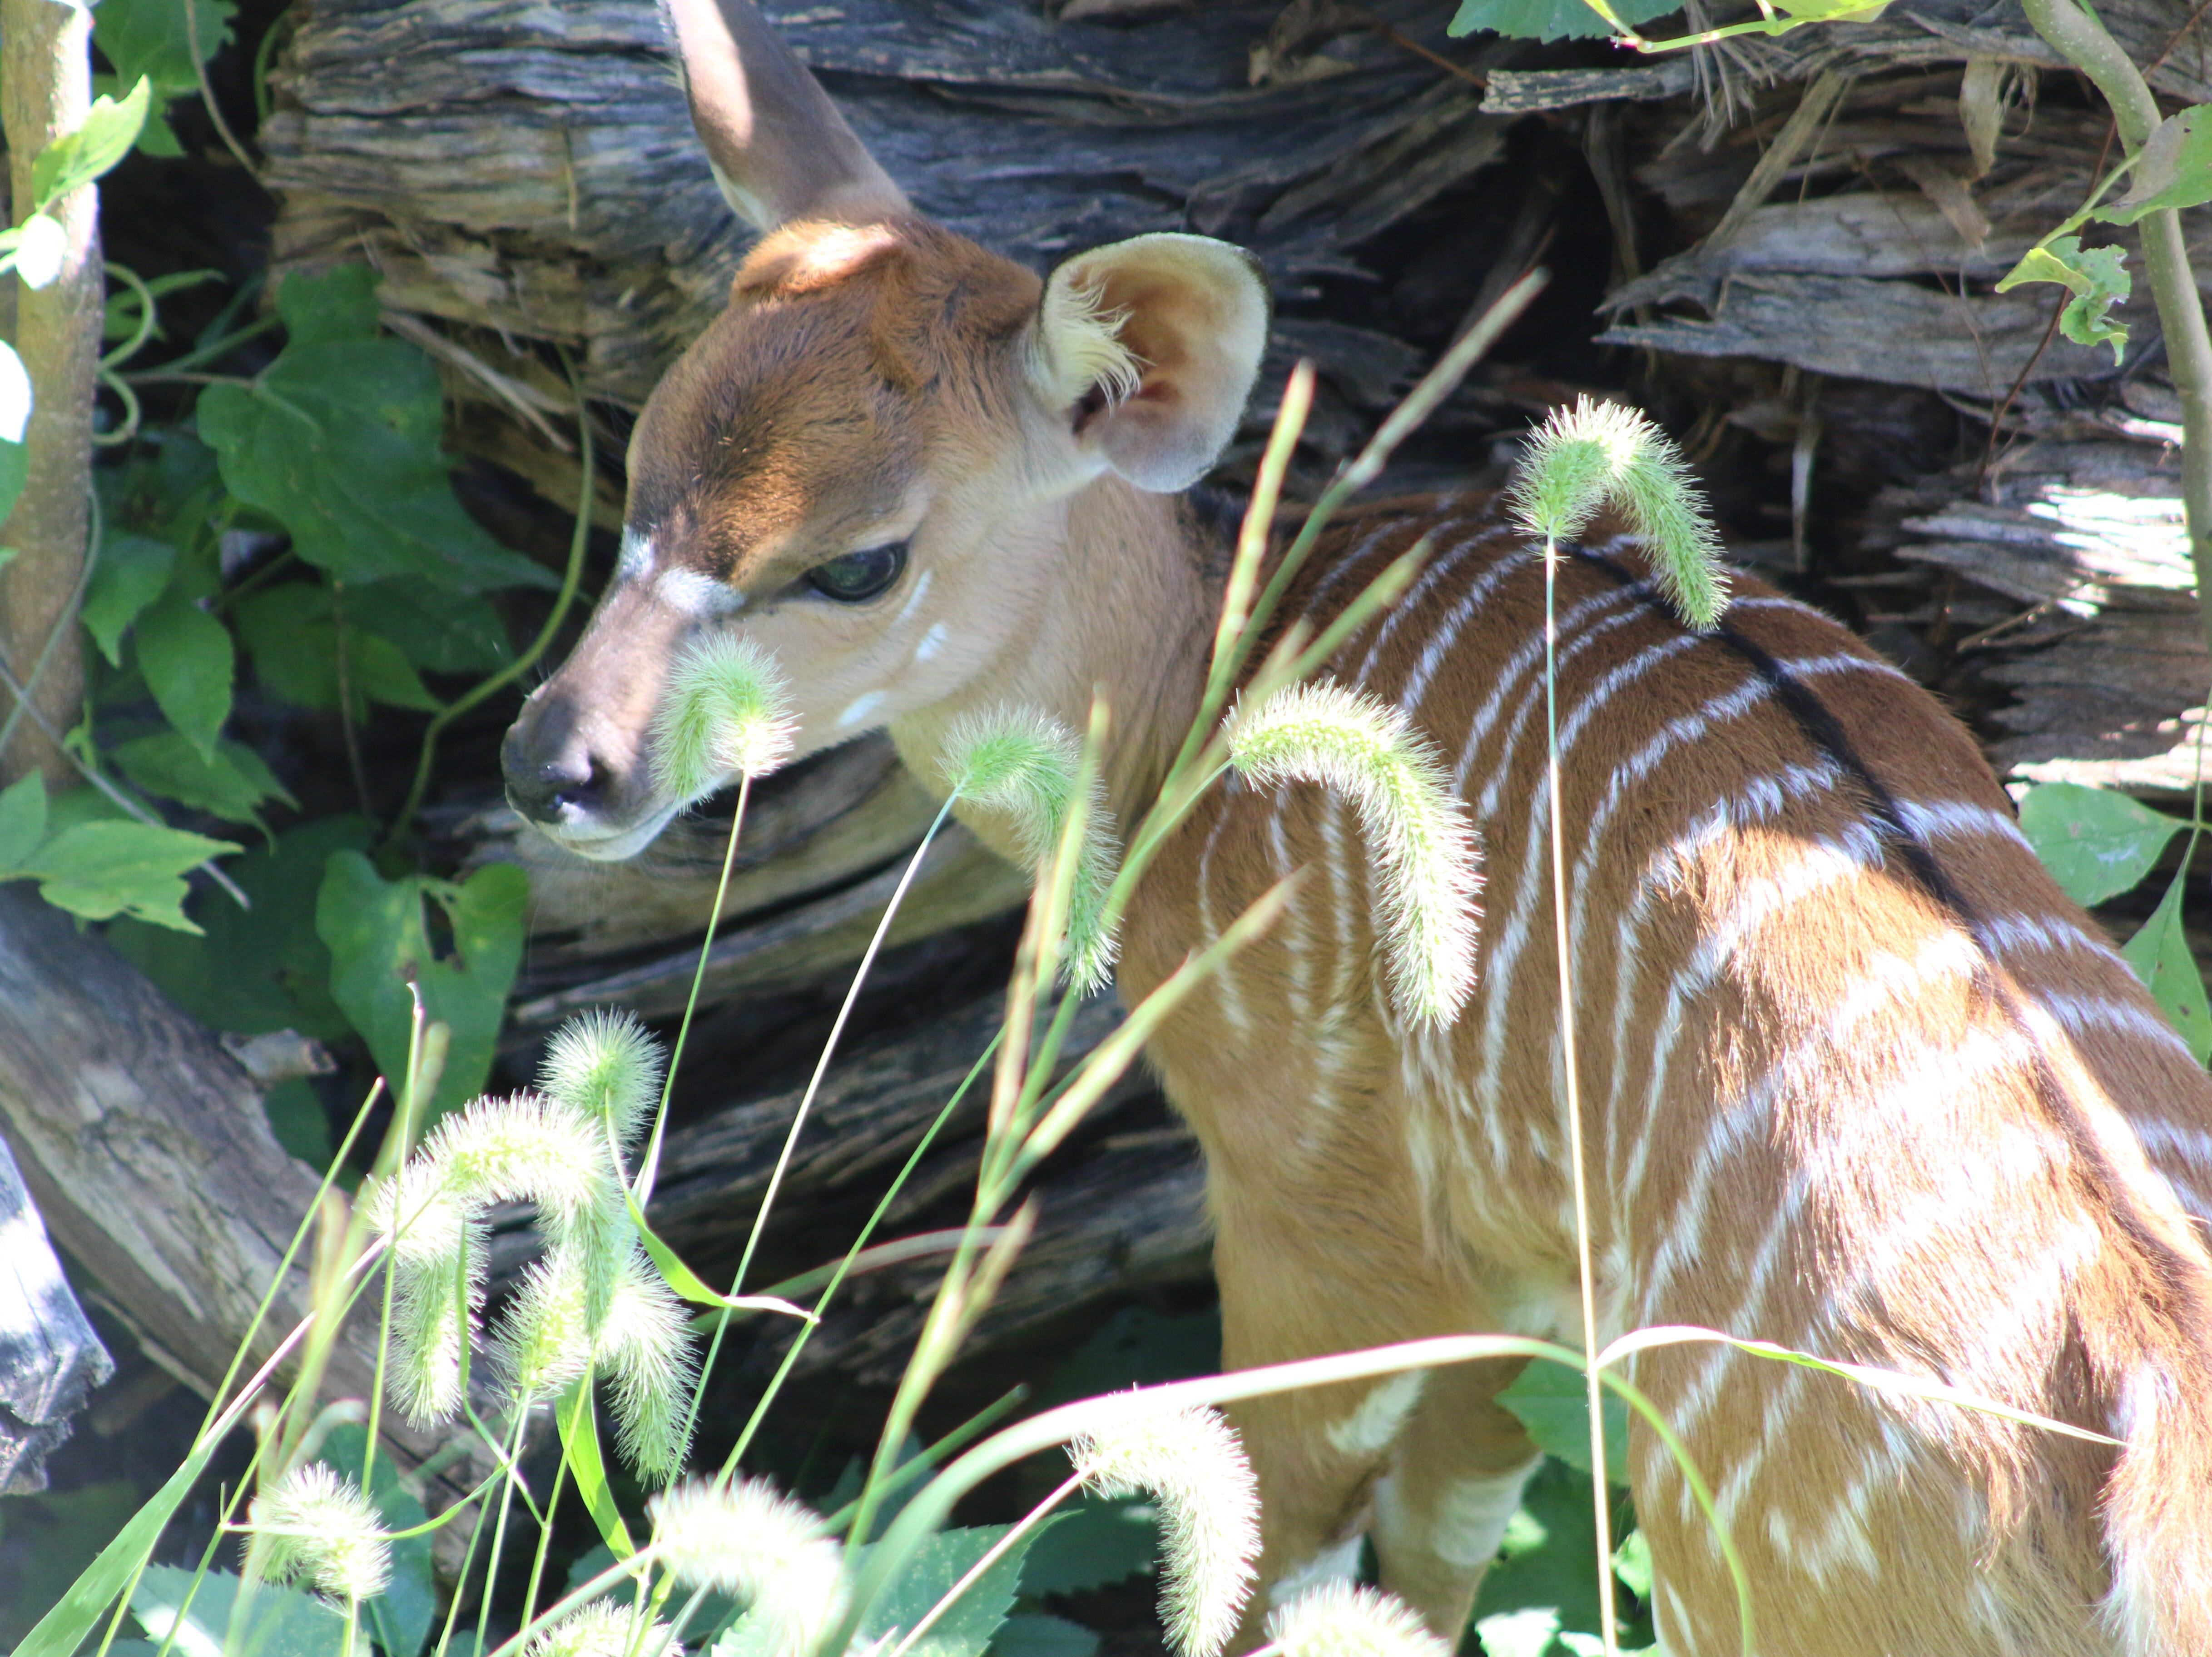 Blank Park Zoo announced Friday that a nyala calf and six flamingo chicks have been born in the last month.